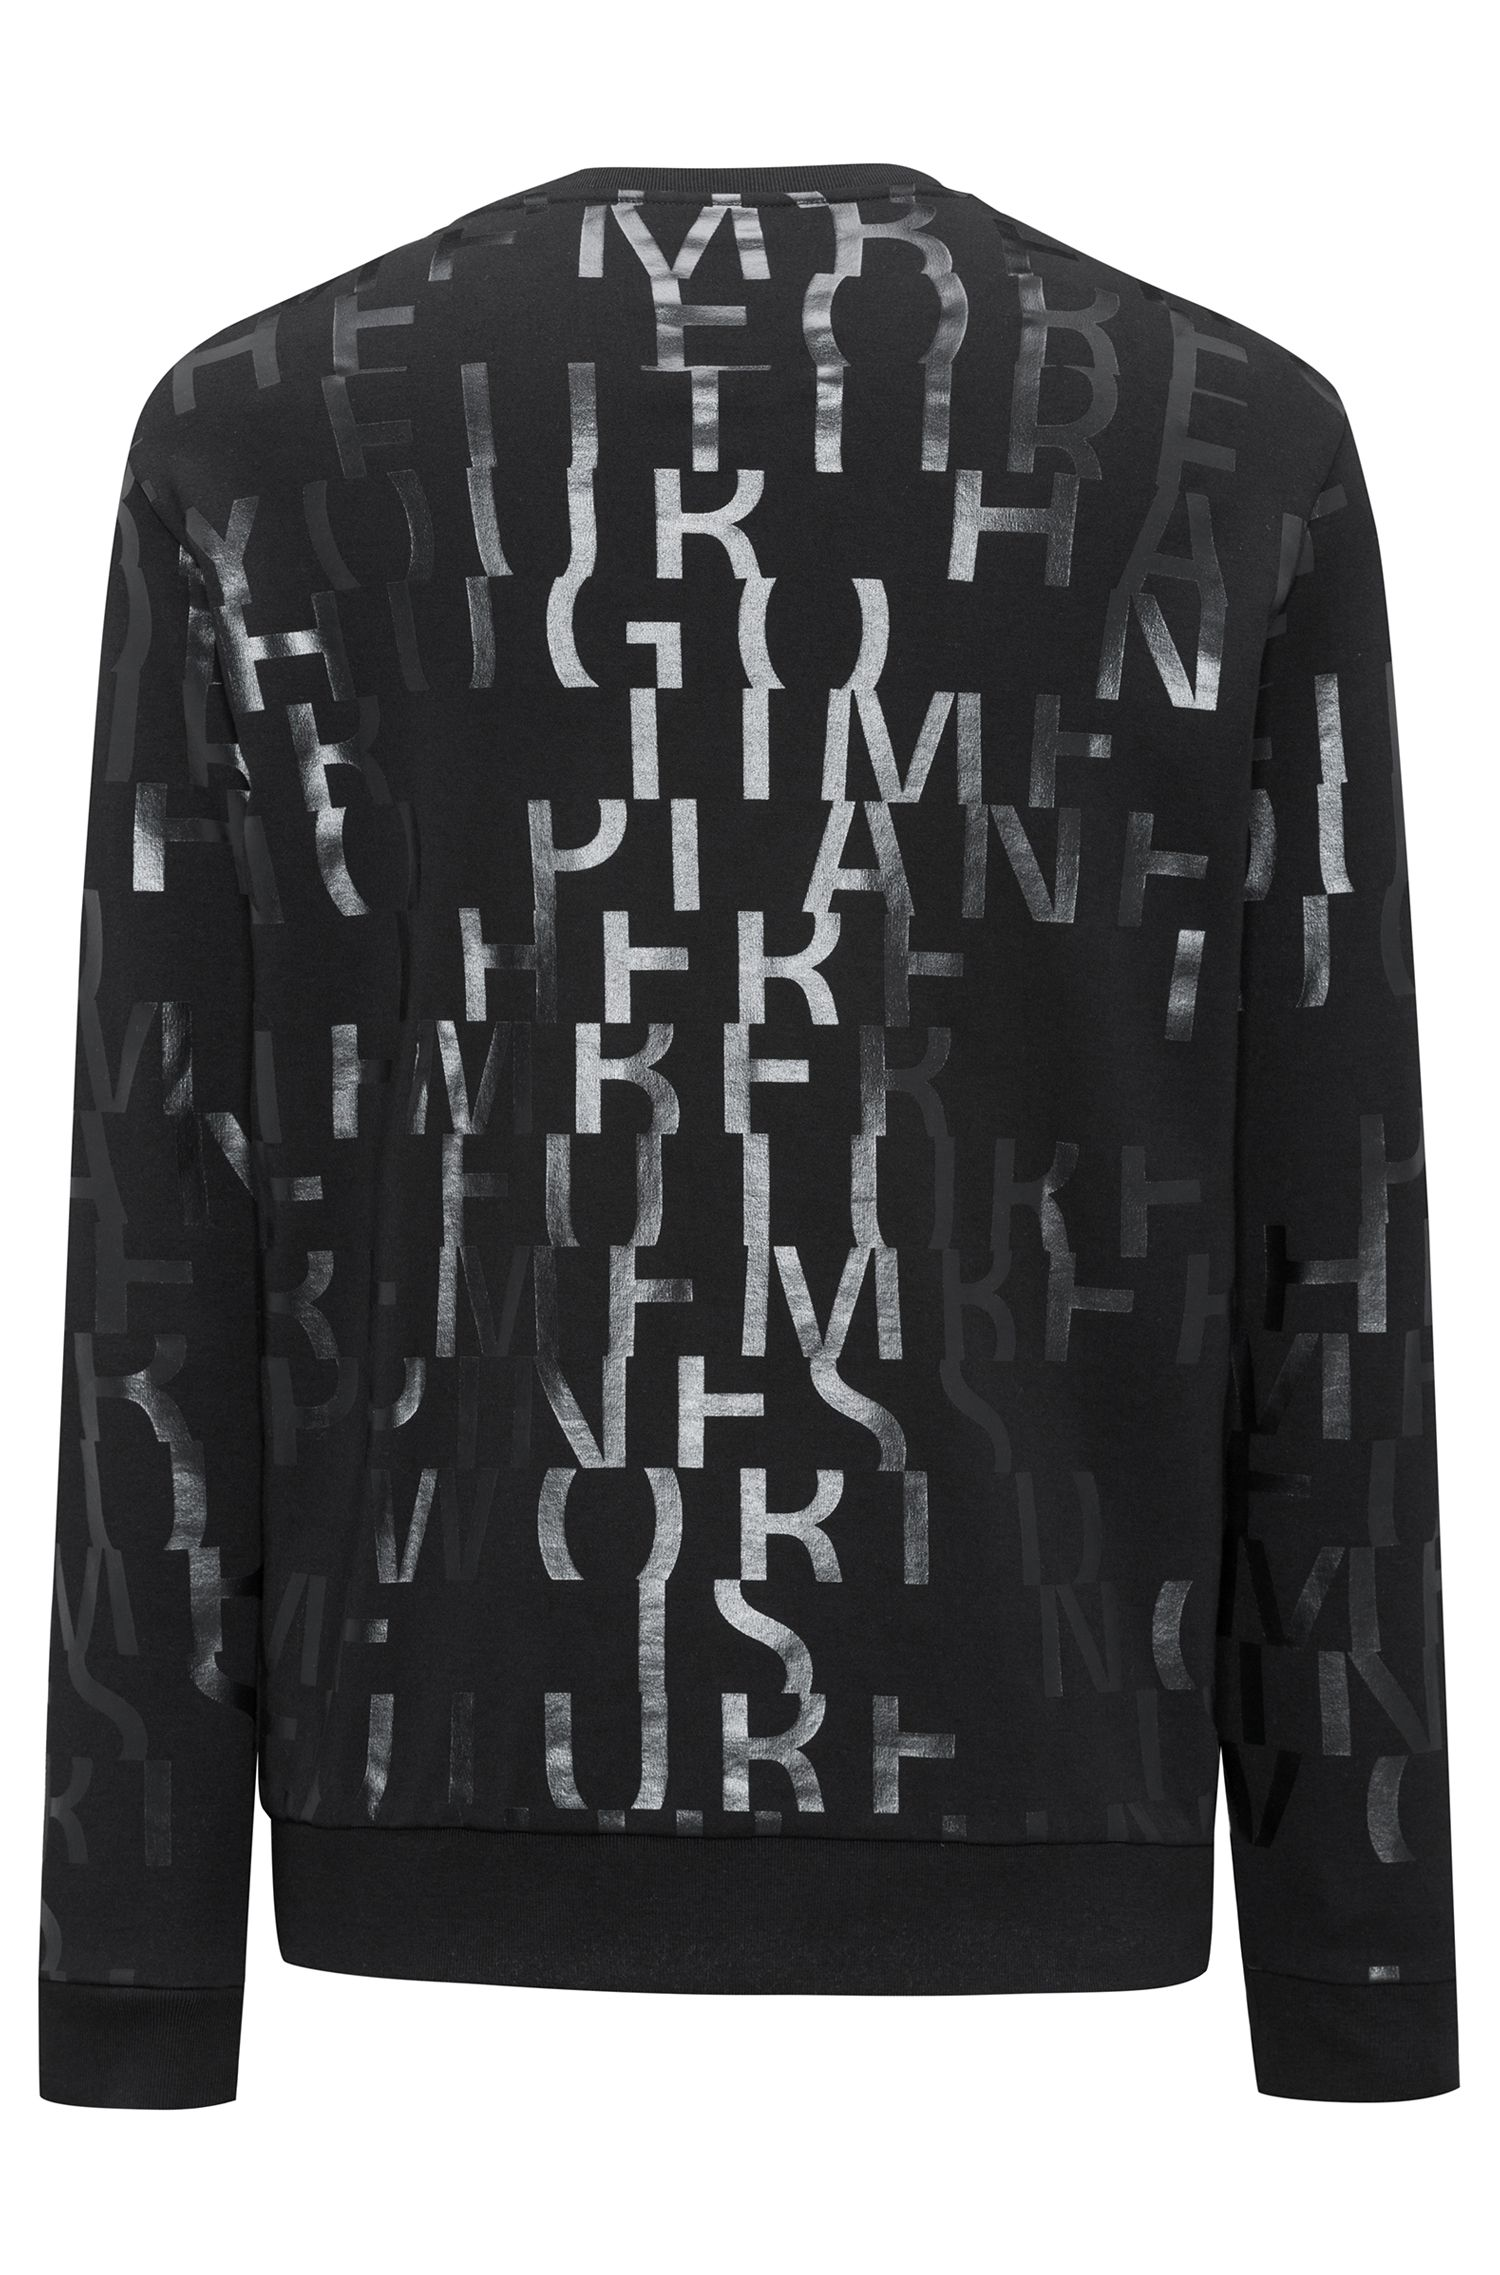 Oversized-fit sweatshirt in pure cotton with abstract slogan